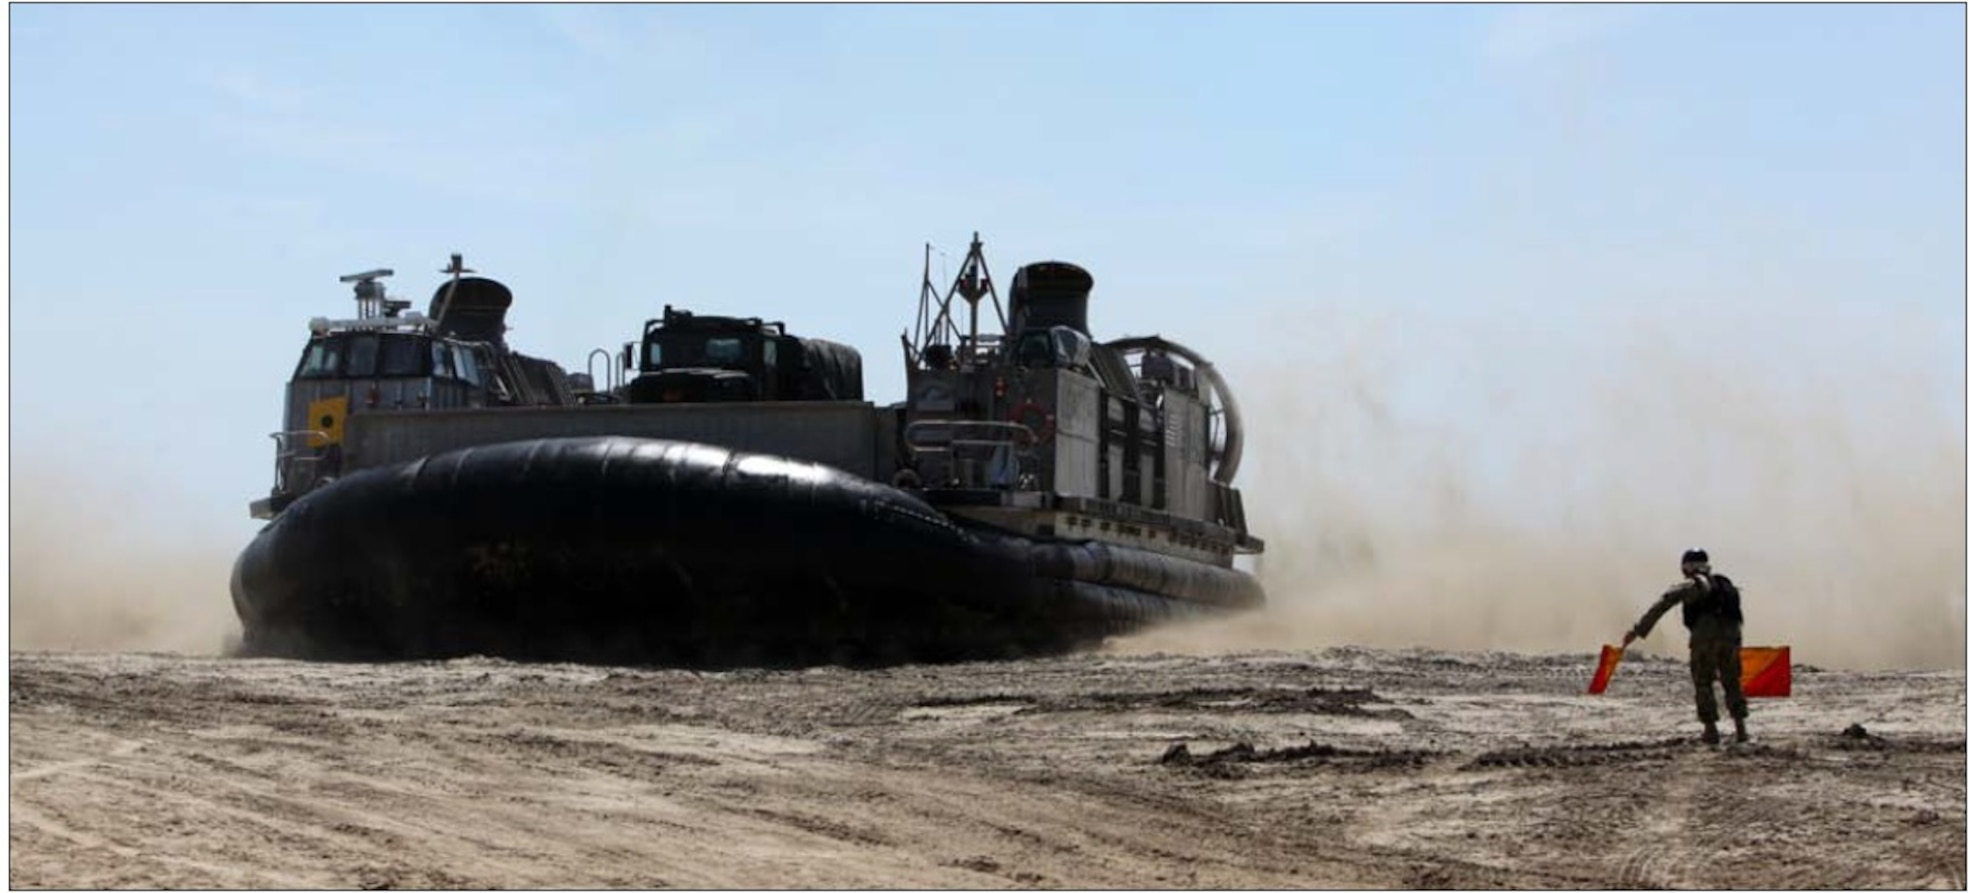 A Landing Craft Air-Cushioned hovercraft with Combat Logistics Battalion 13, Combat Logistics Regiment 17, 1st Marine Logistics Group, lands on Red Beach during an amphibious landing exercise with I Marine Expeditionary Force at Camp Pendleton, Calif., April 18.